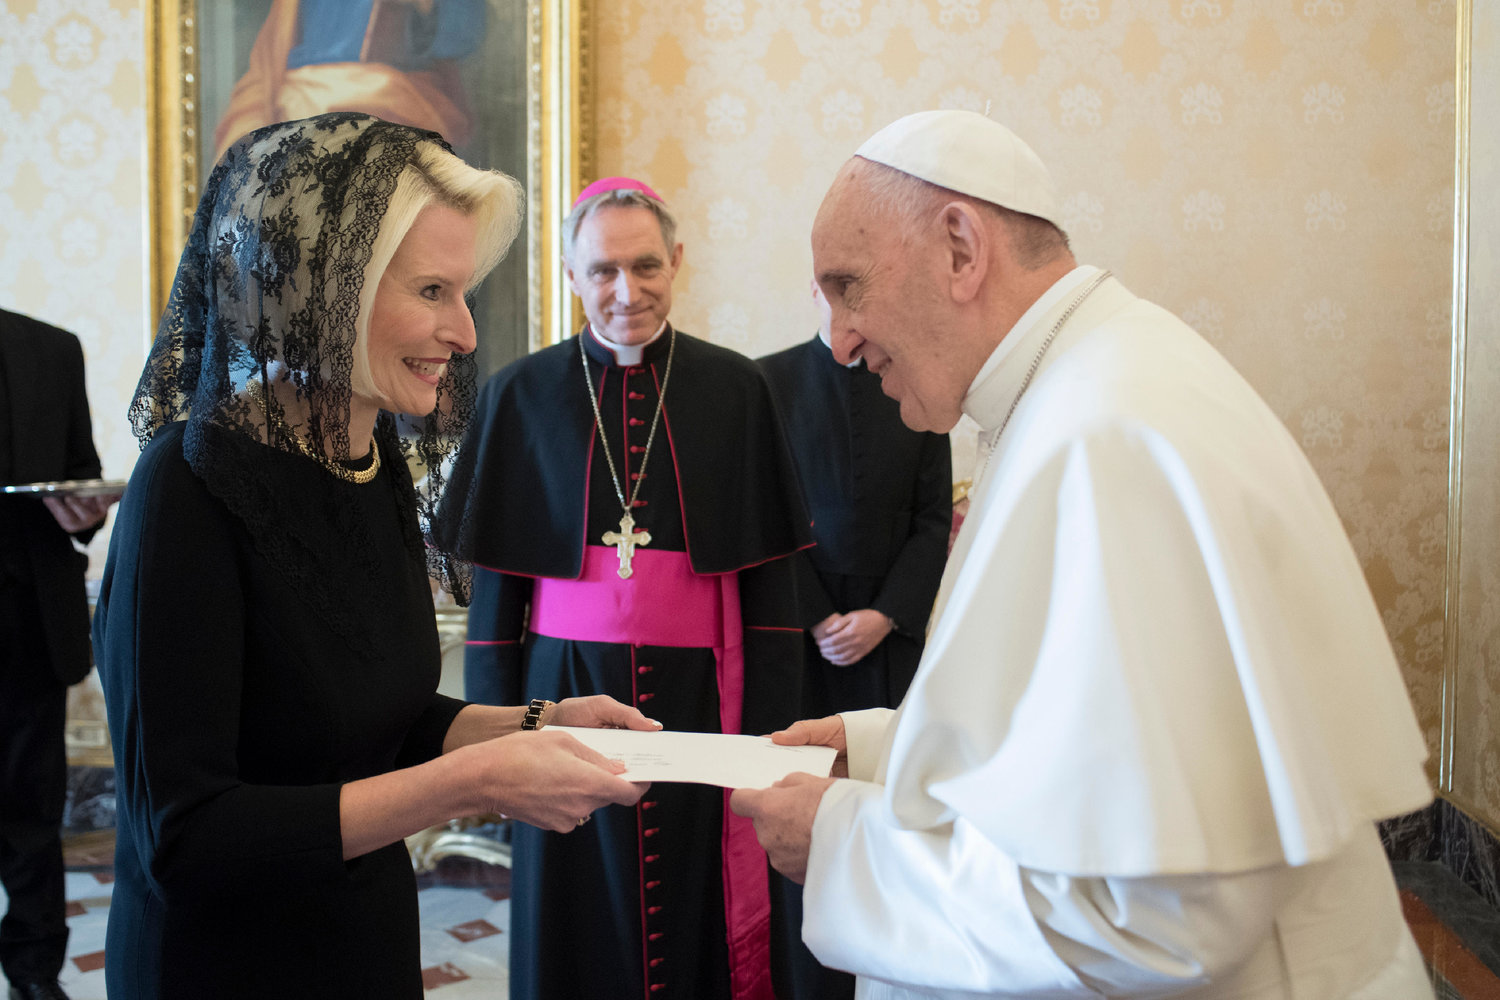 US Ambassador to the Holy See Callista Gingrich meets Pope Francis on December 22, 2017. Photo: AFP/Osservator Romano